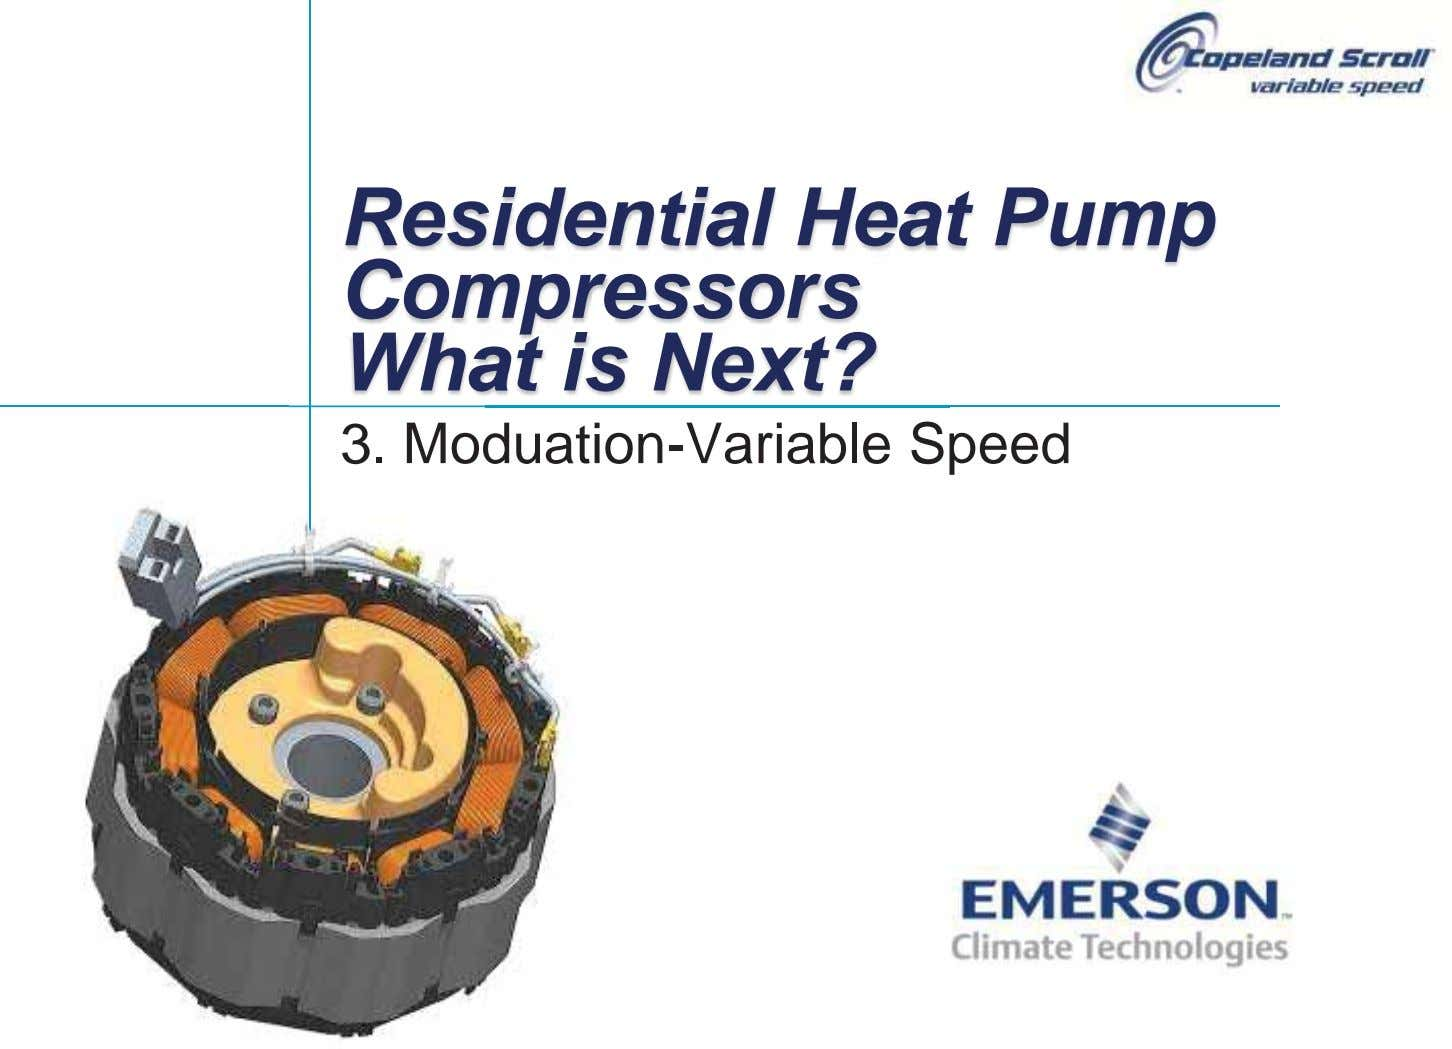 Residential Heat Pump Compressors What is Next? 3. Moduation-Variable Speed